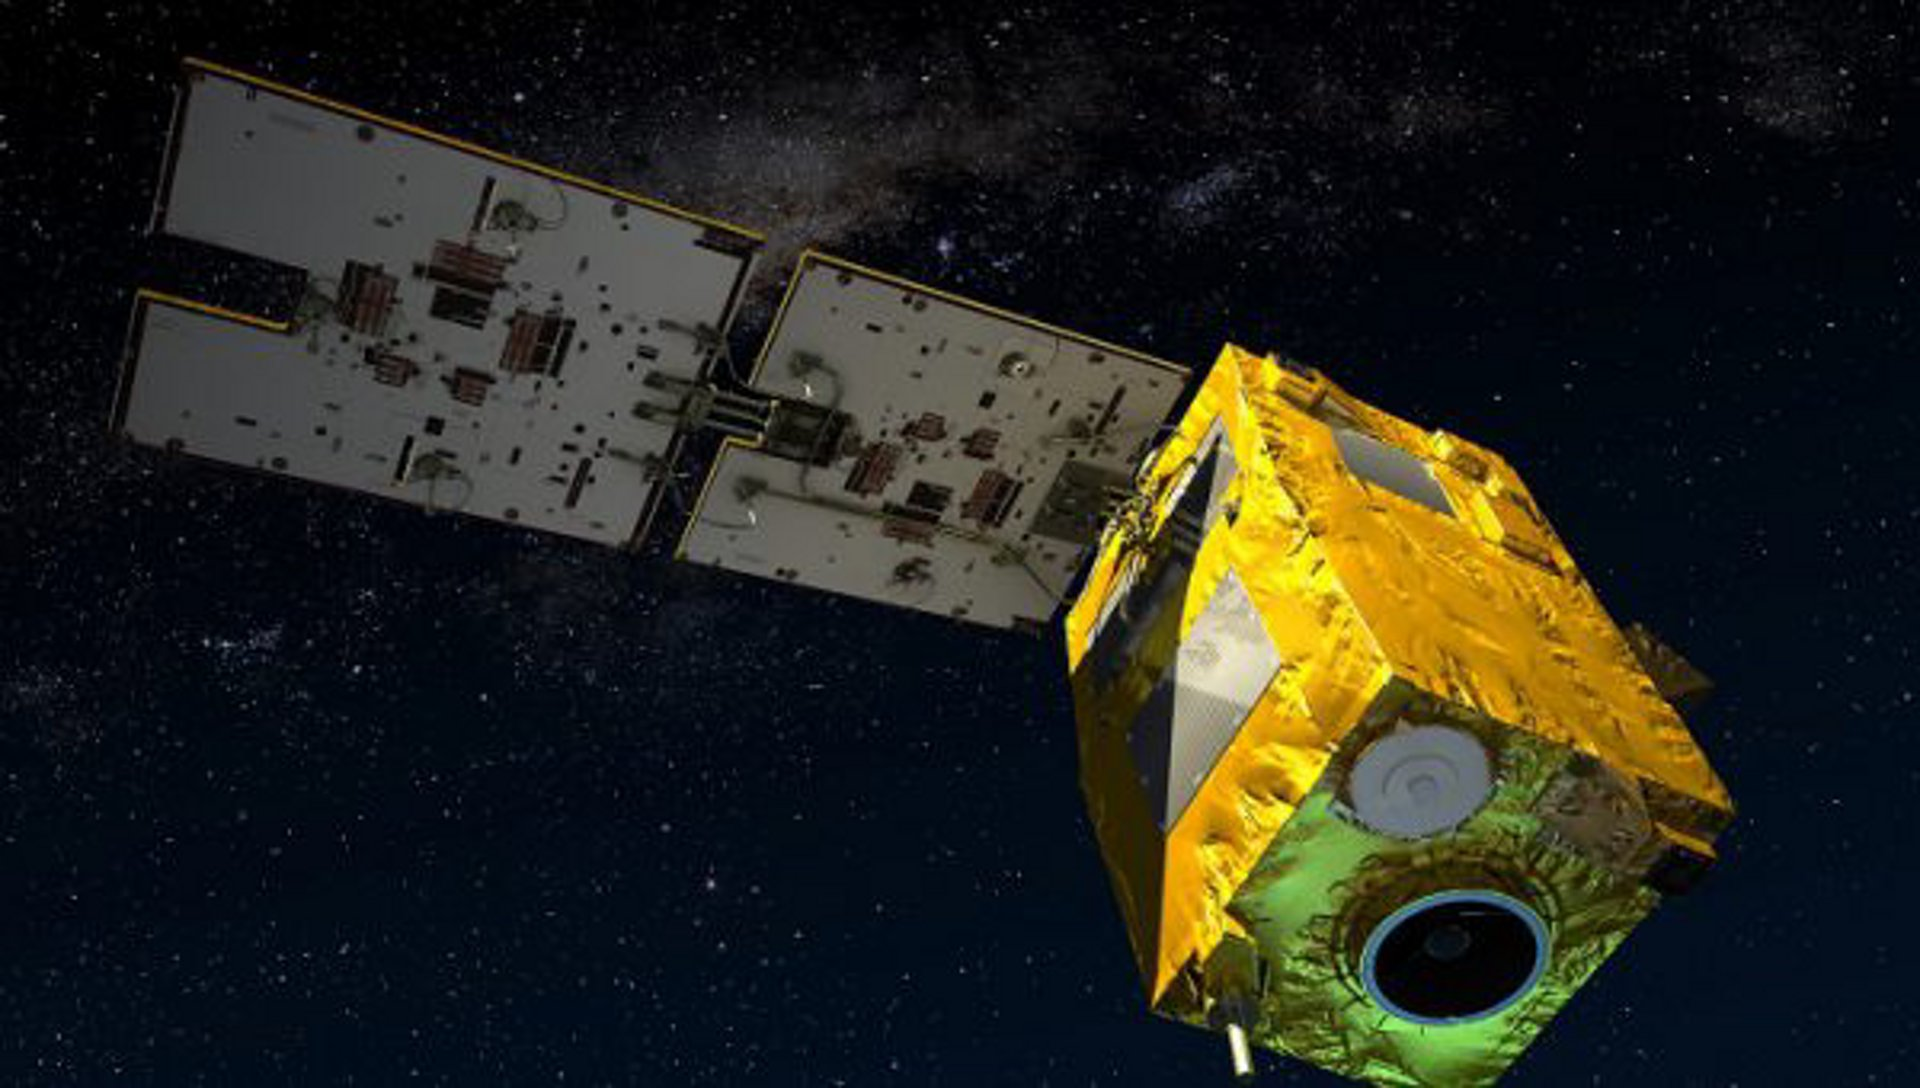 A computer rendering of the in-orbit configuration for the SSOT (Sistema Satelital de Observación de la Tierra) Earth observation satellite, built by Airbus for Chile.